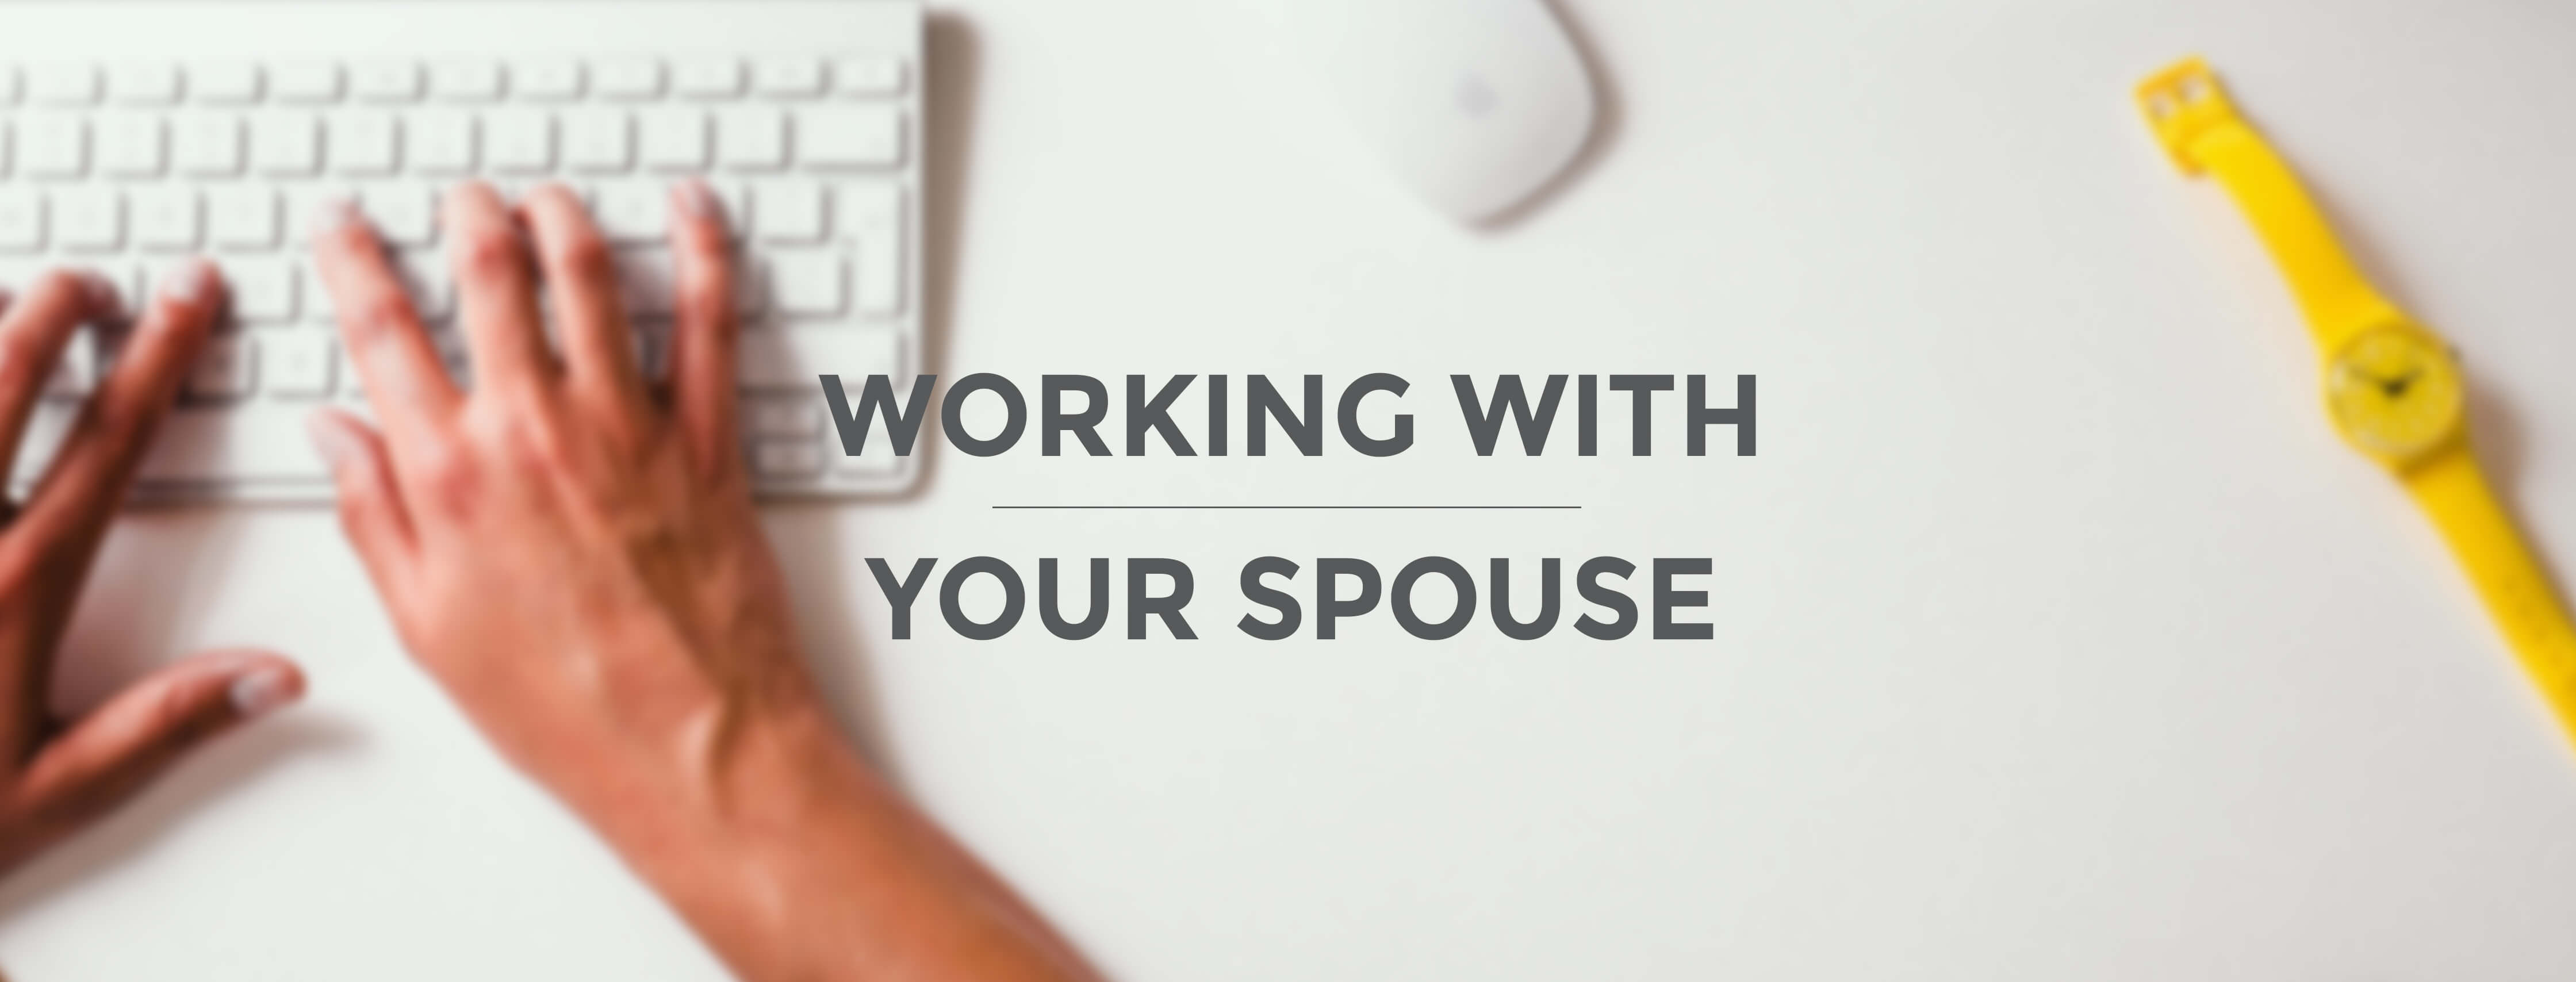 working-with-your-spouse